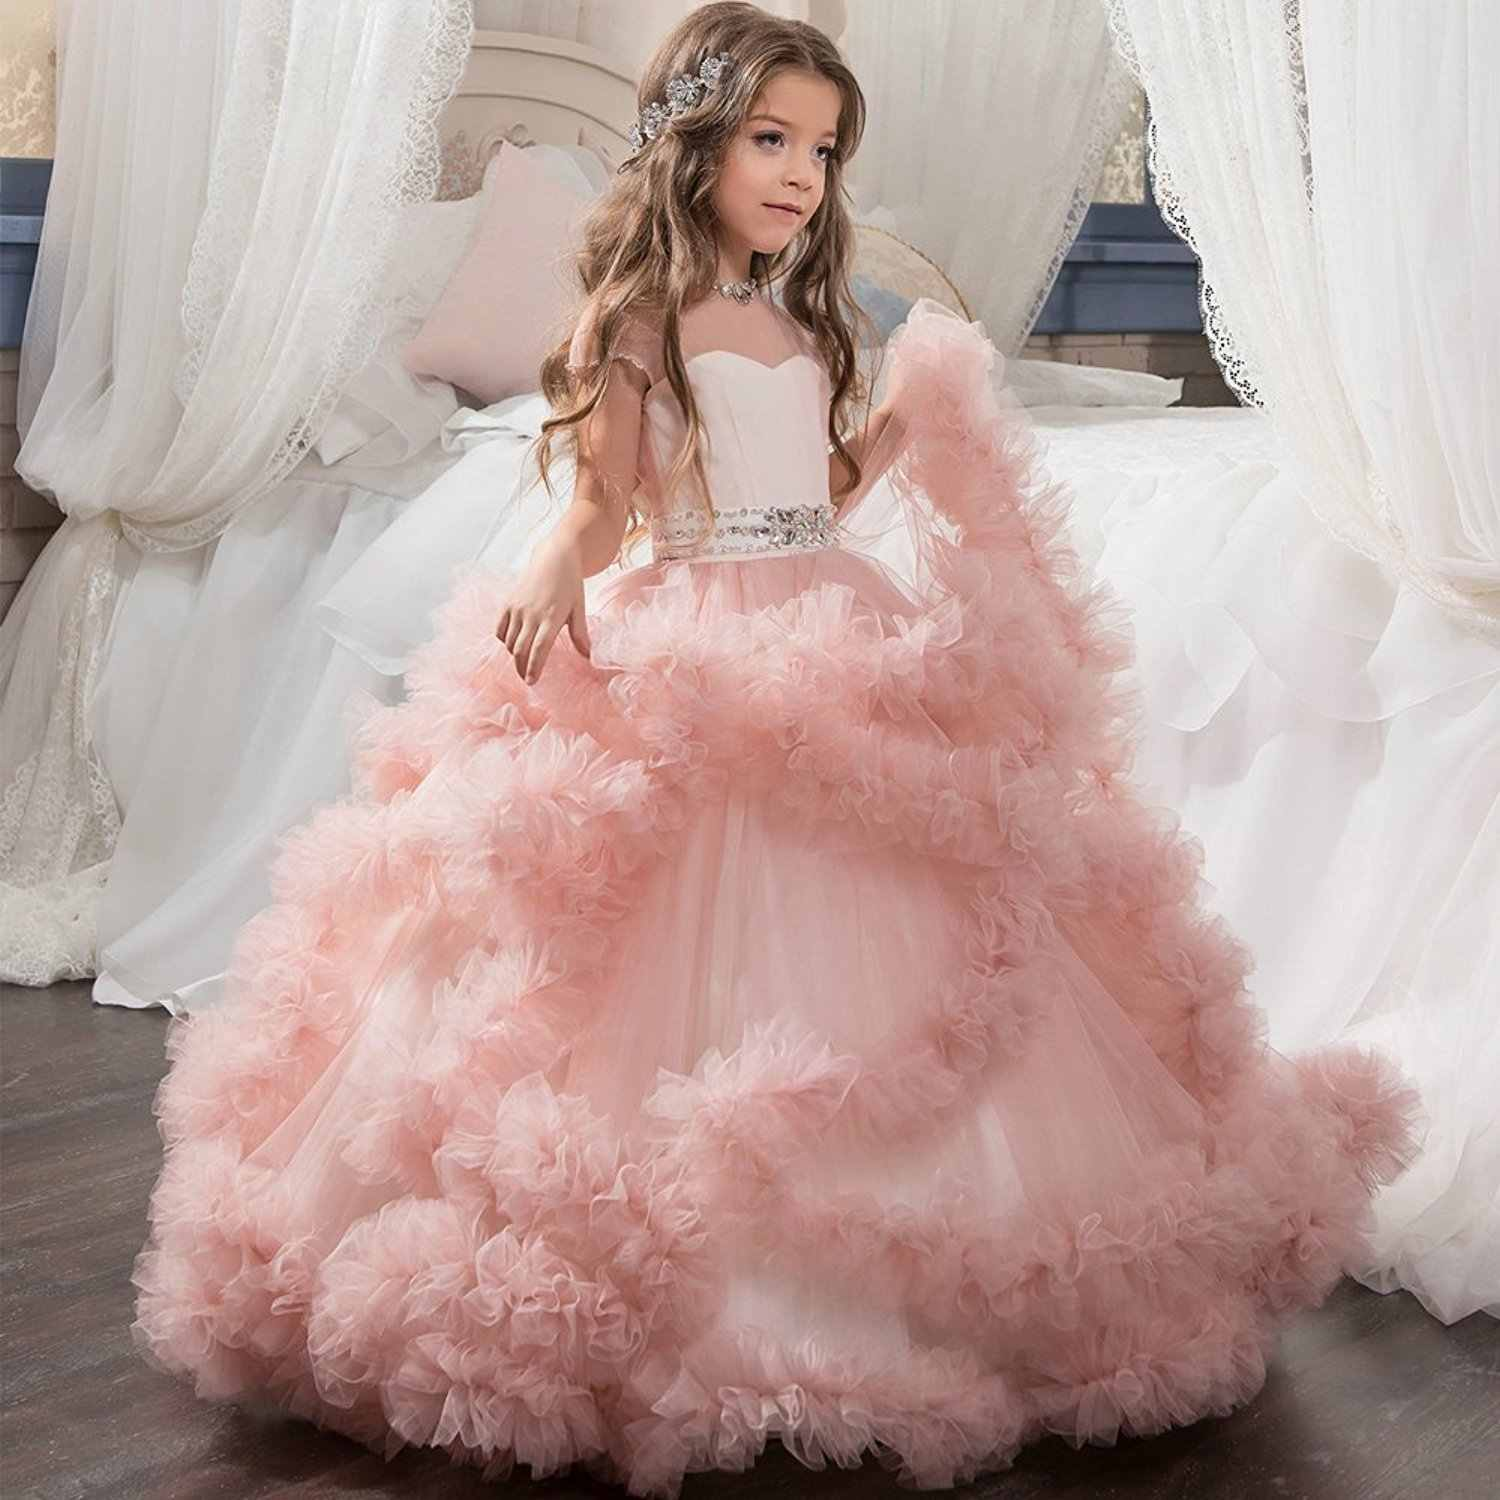 girls dress 10 to 12 years wedding teenager clothes kids